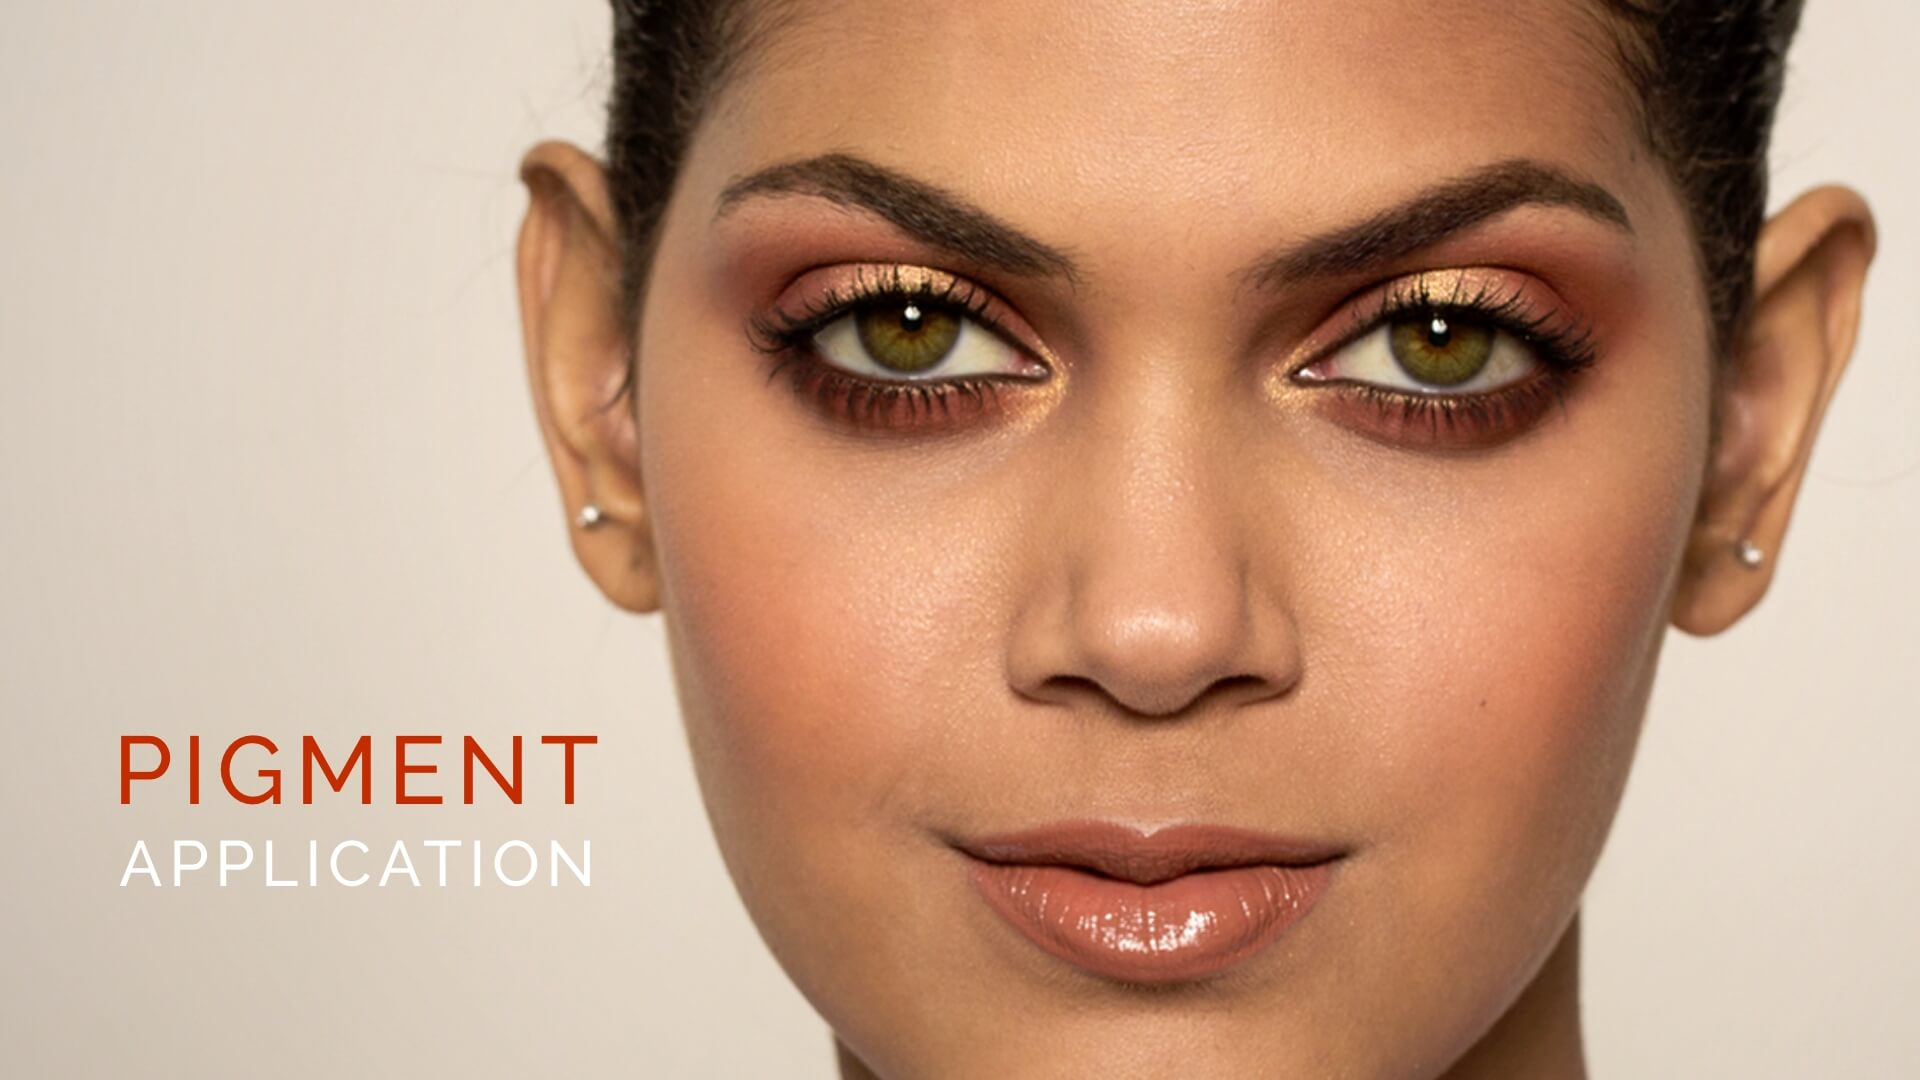 Pigment Placement And Application